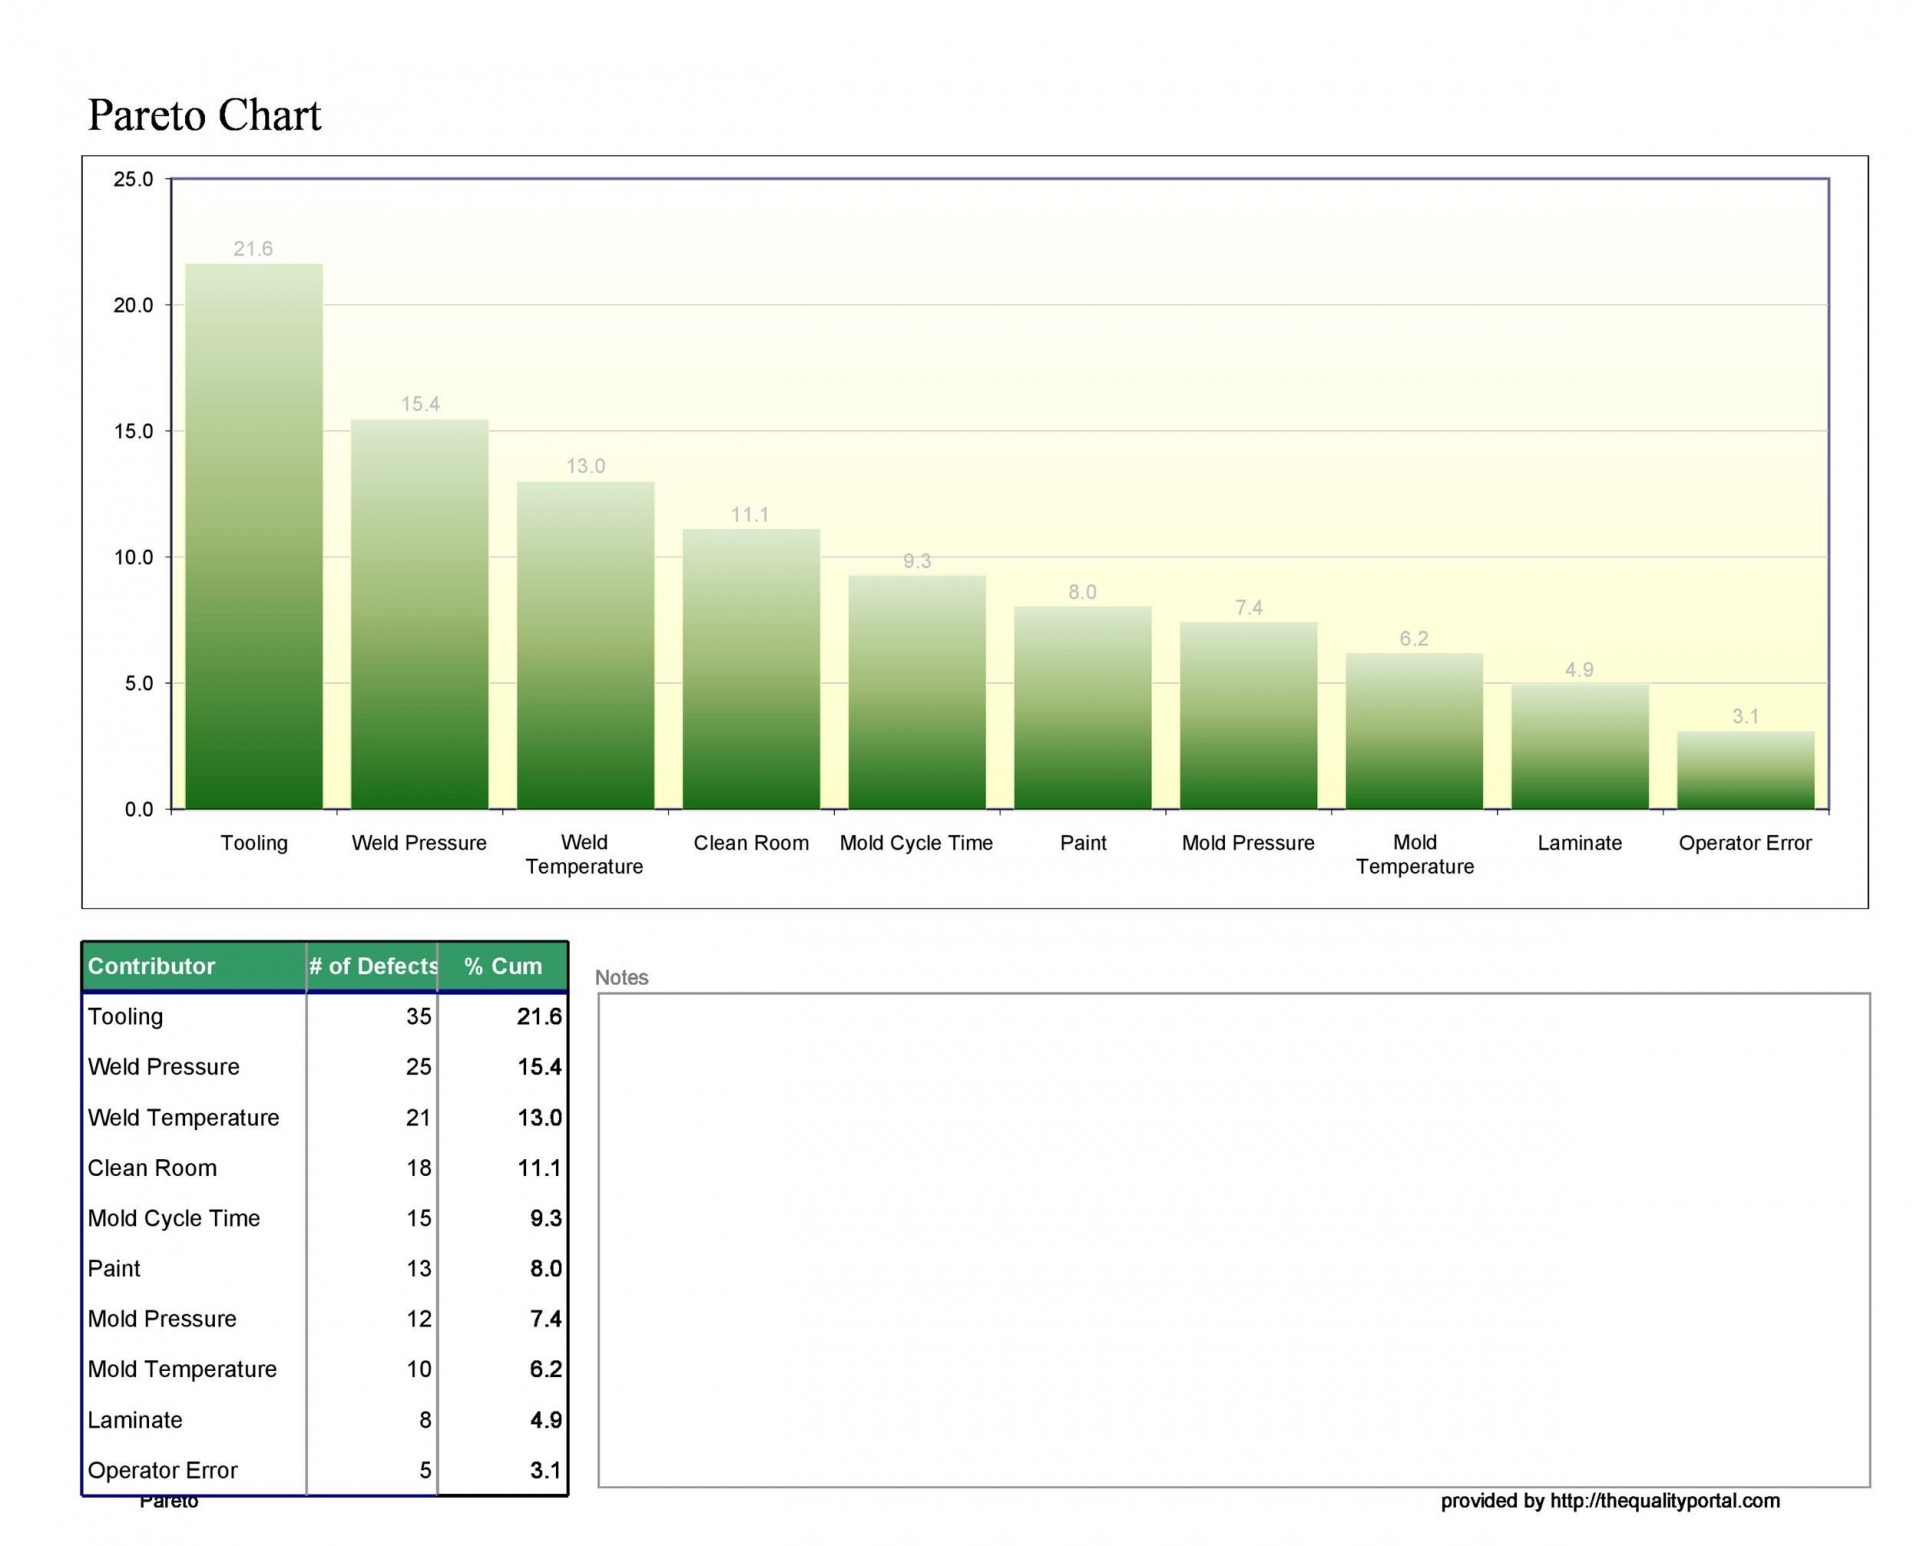 007 Marvelou Pareto Chart Excel Template High Resolution  2016 Download Microsoft Control M1920